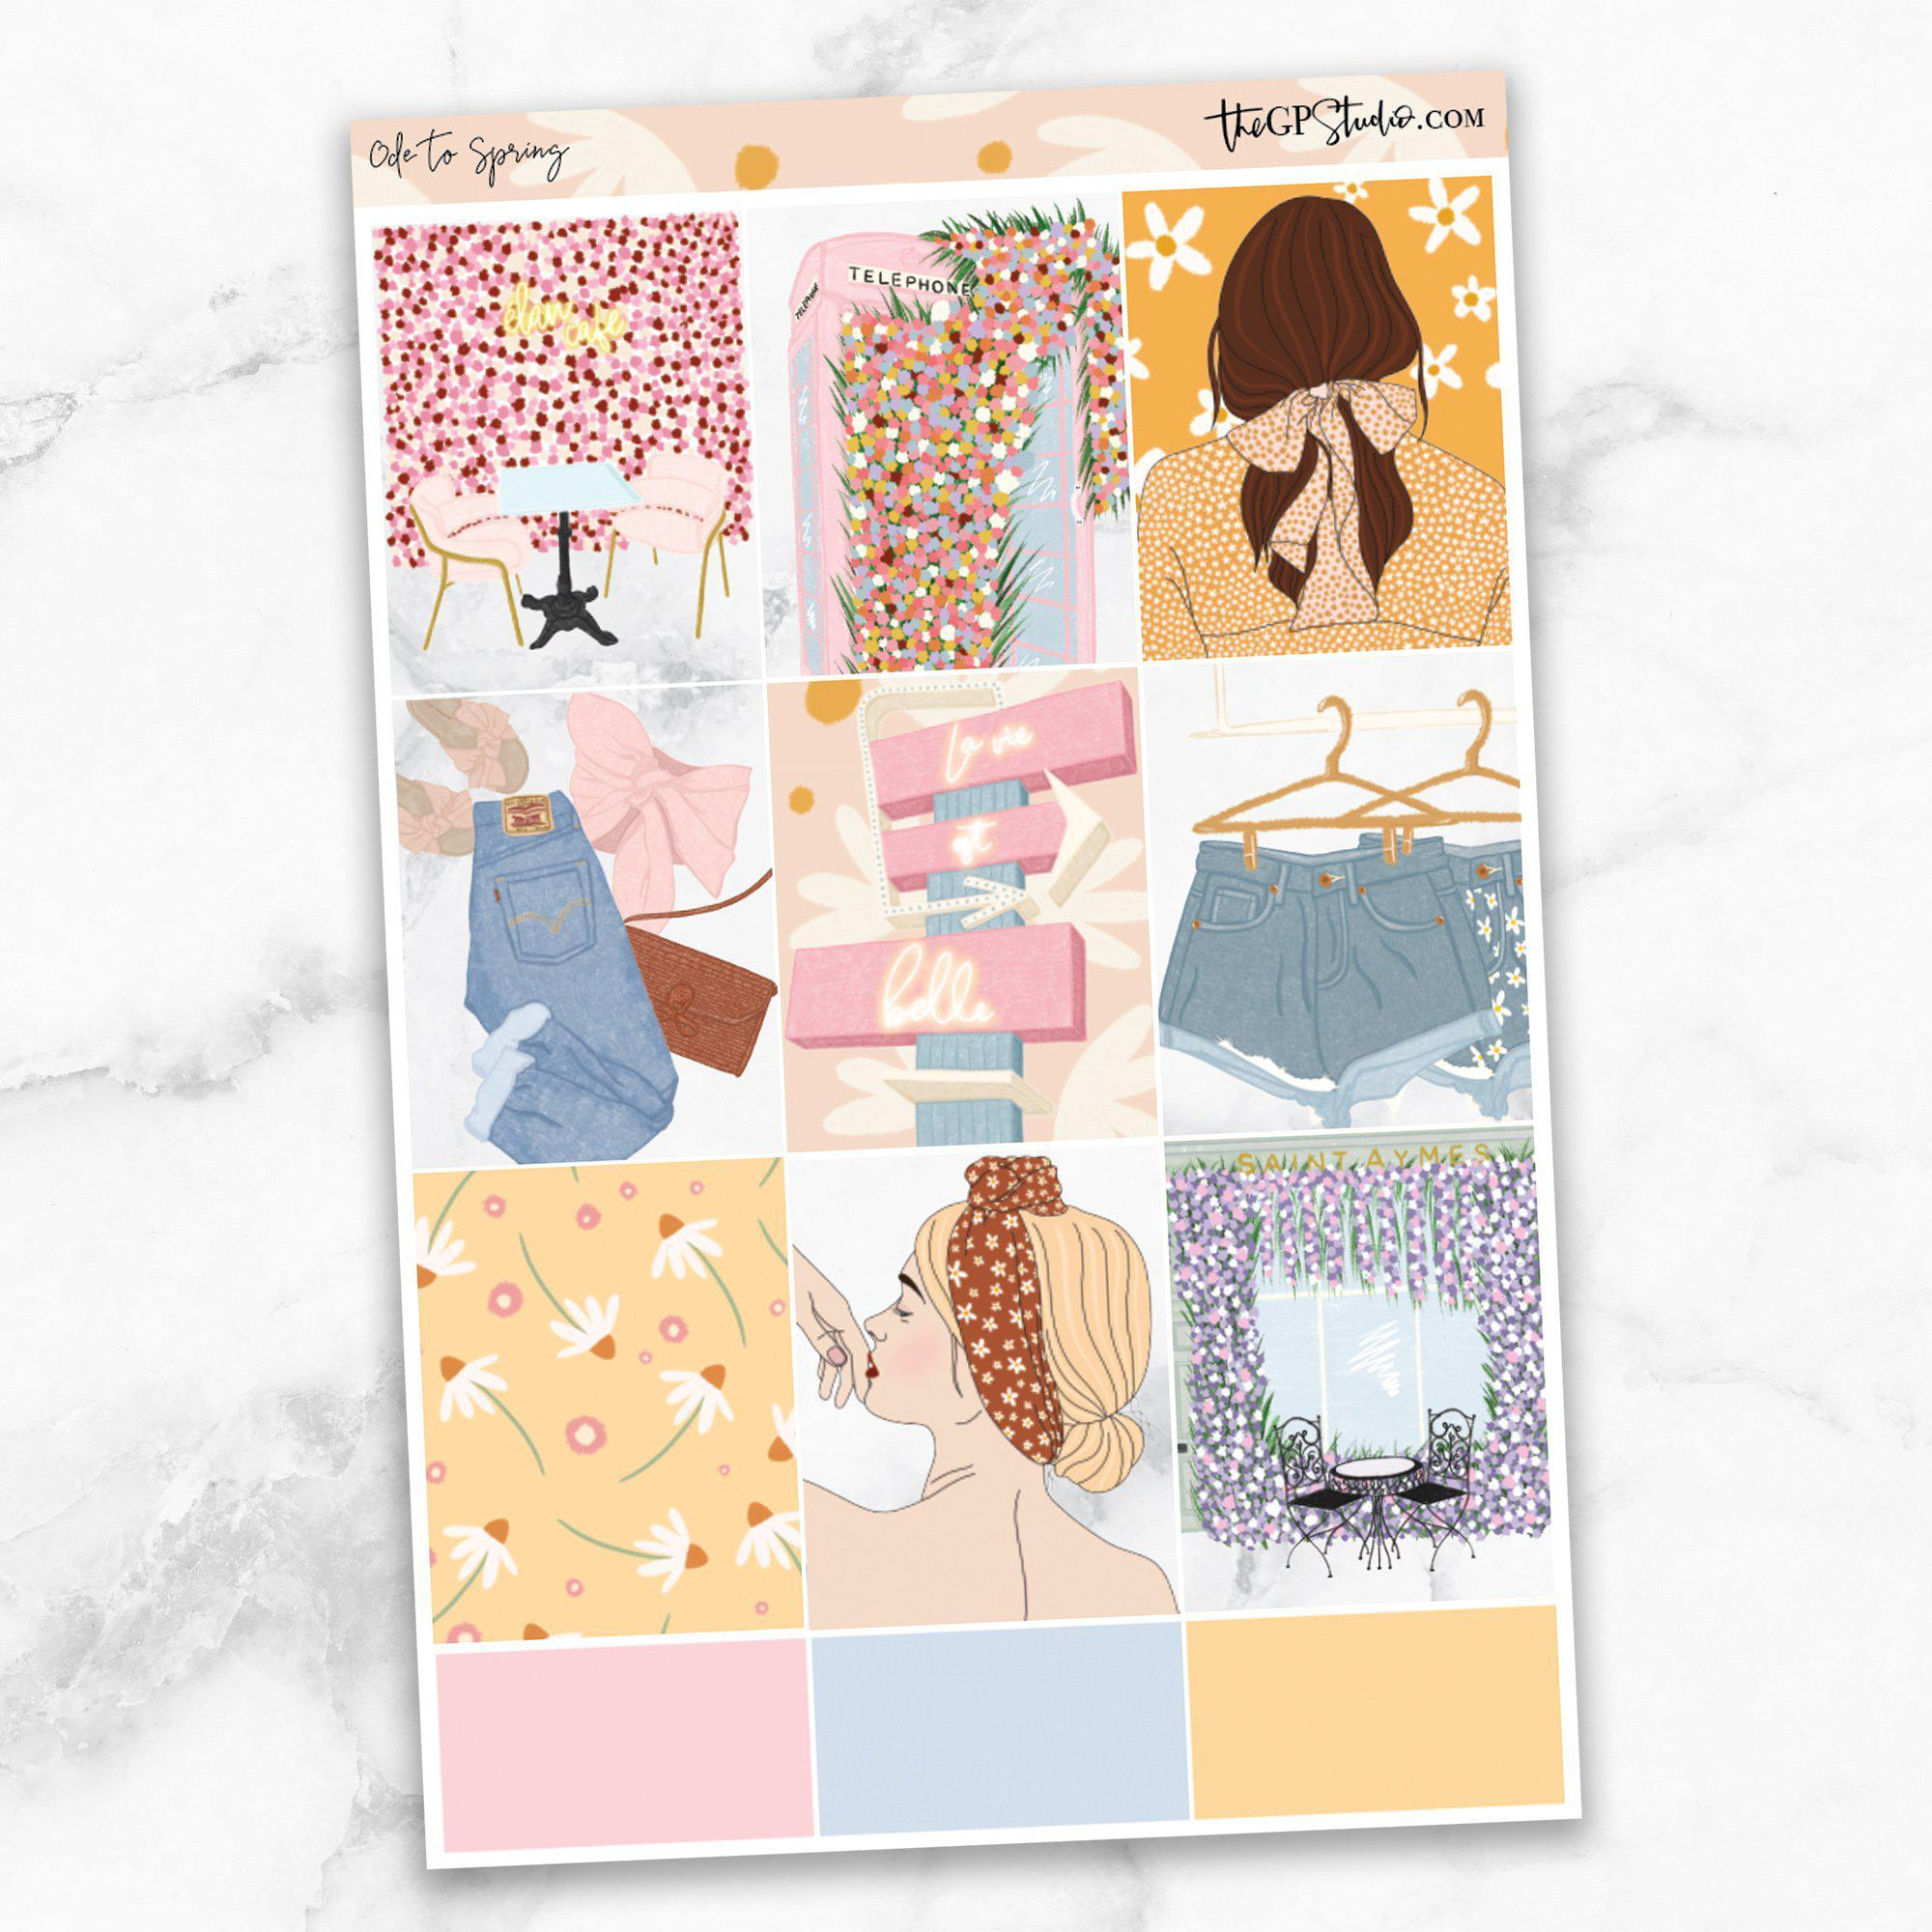 ODE TO SPRING Full Boxes Planner Stickers-The GP Studio